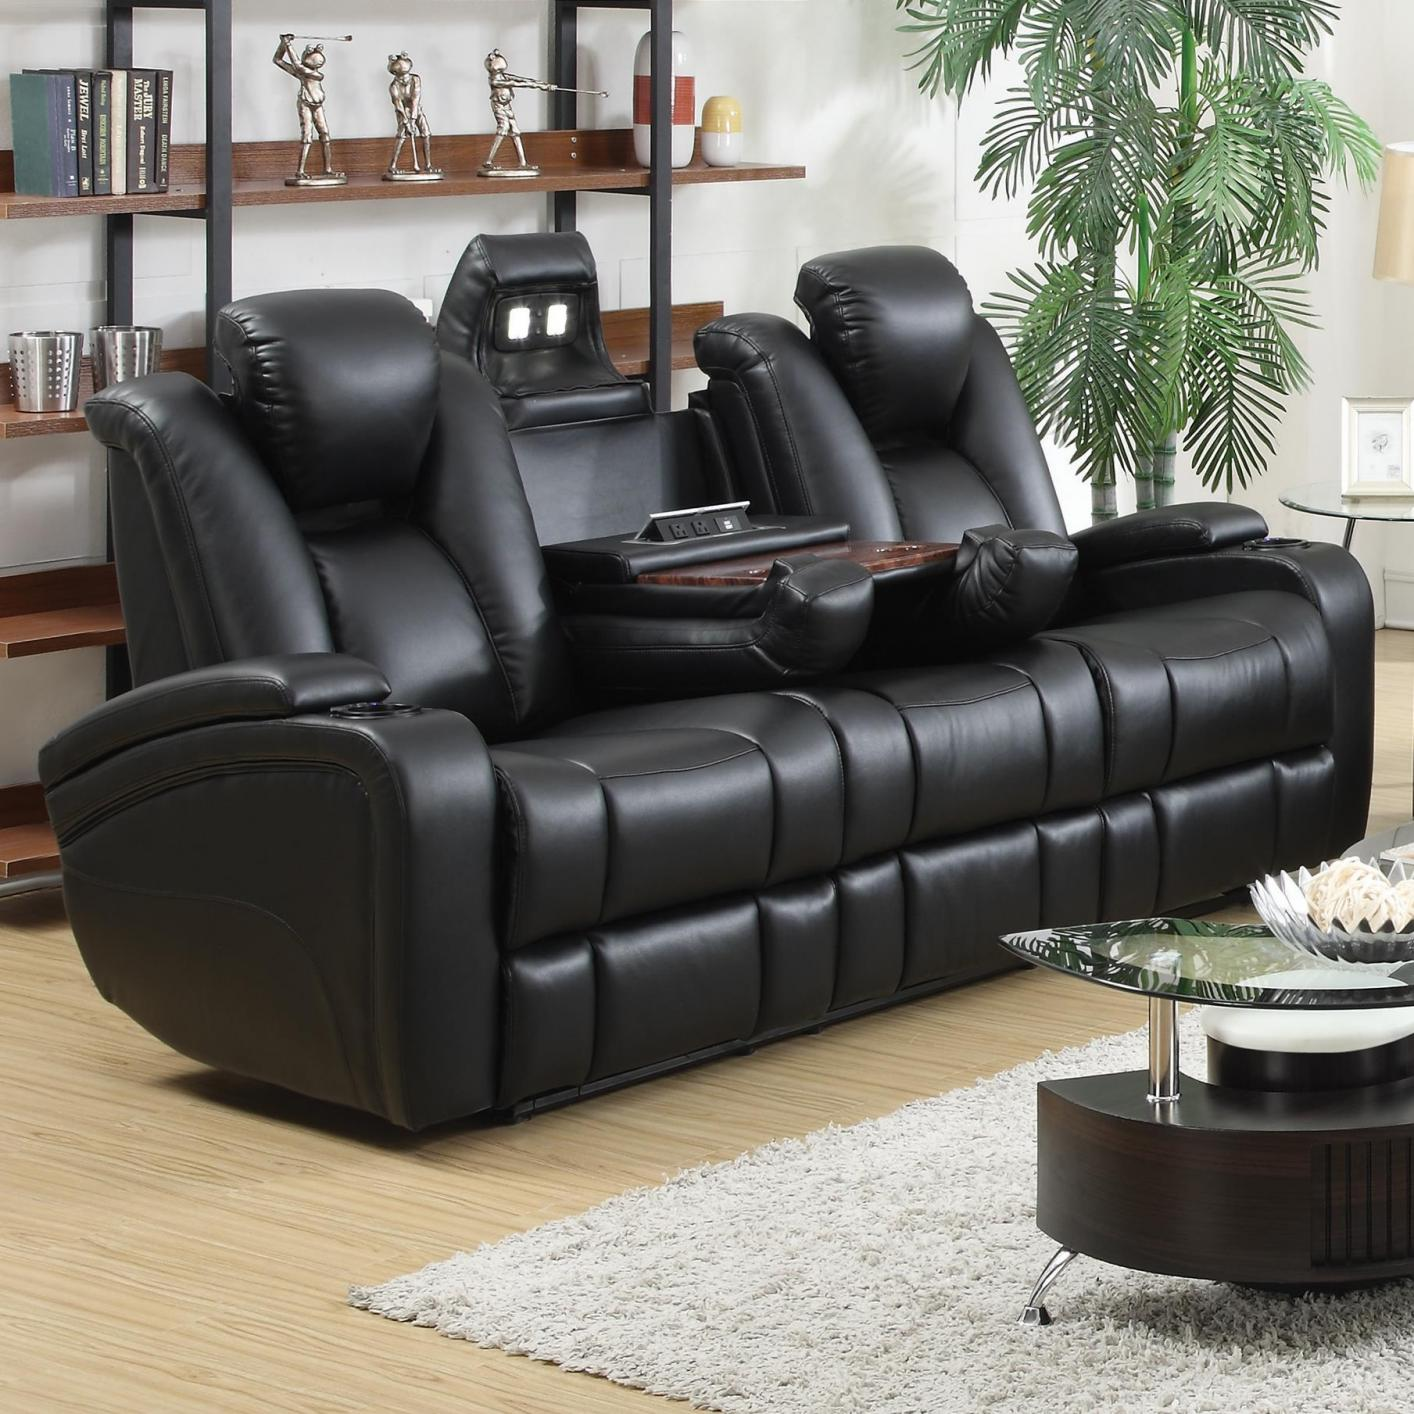 black leather power reclining sofa steal a sofa furniture outlet rh stealasofa com Lane Leather Power Reclining Loveseat phoenix leather power reclining sofa & loveseat